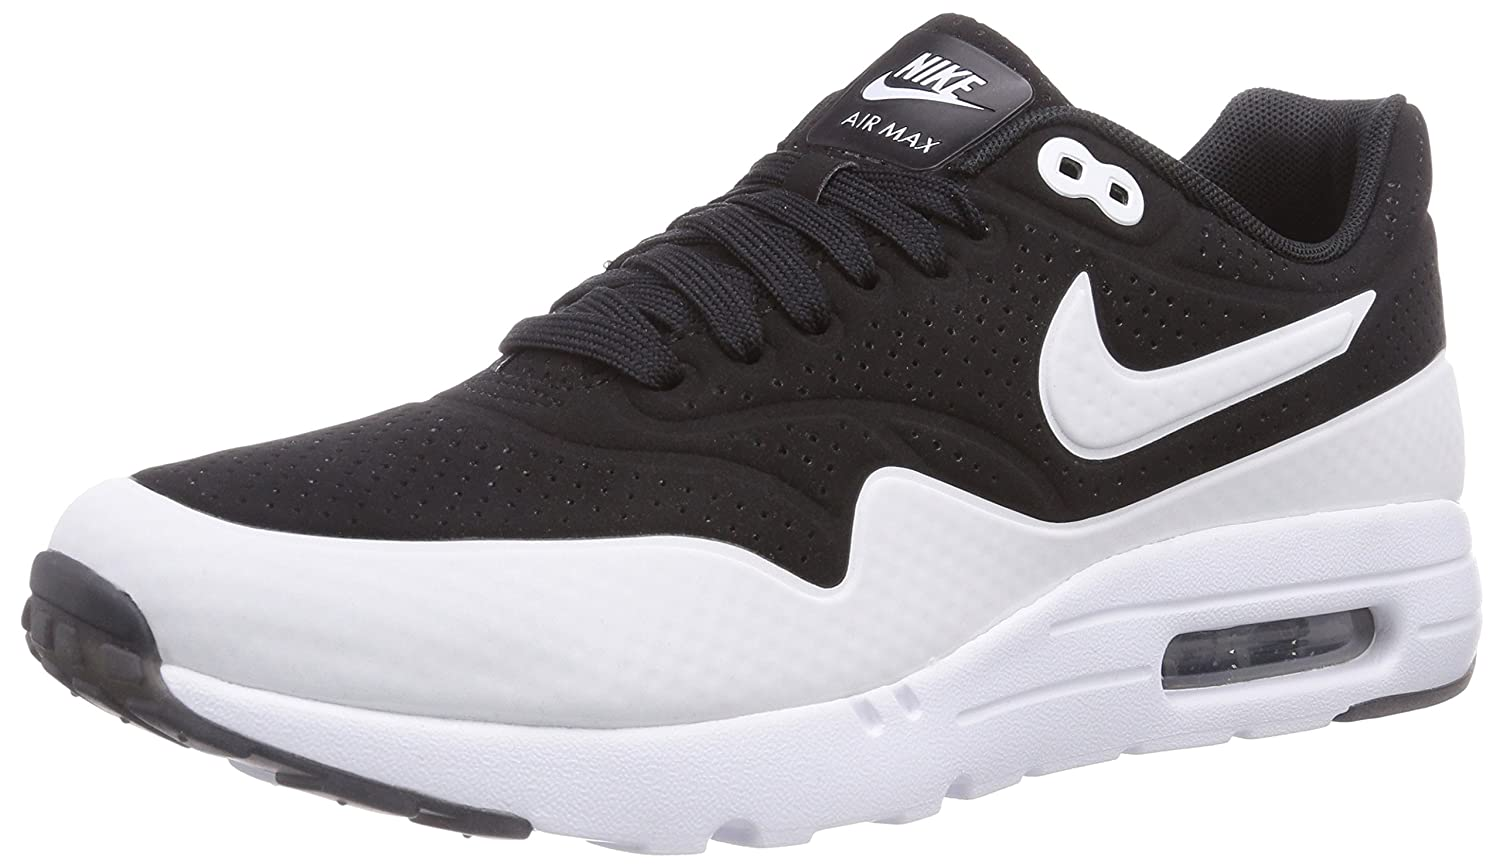 Nike Air Max 1 Ultra Moire Men's Fashion Sneaker BlackWhiteBlack UK 11